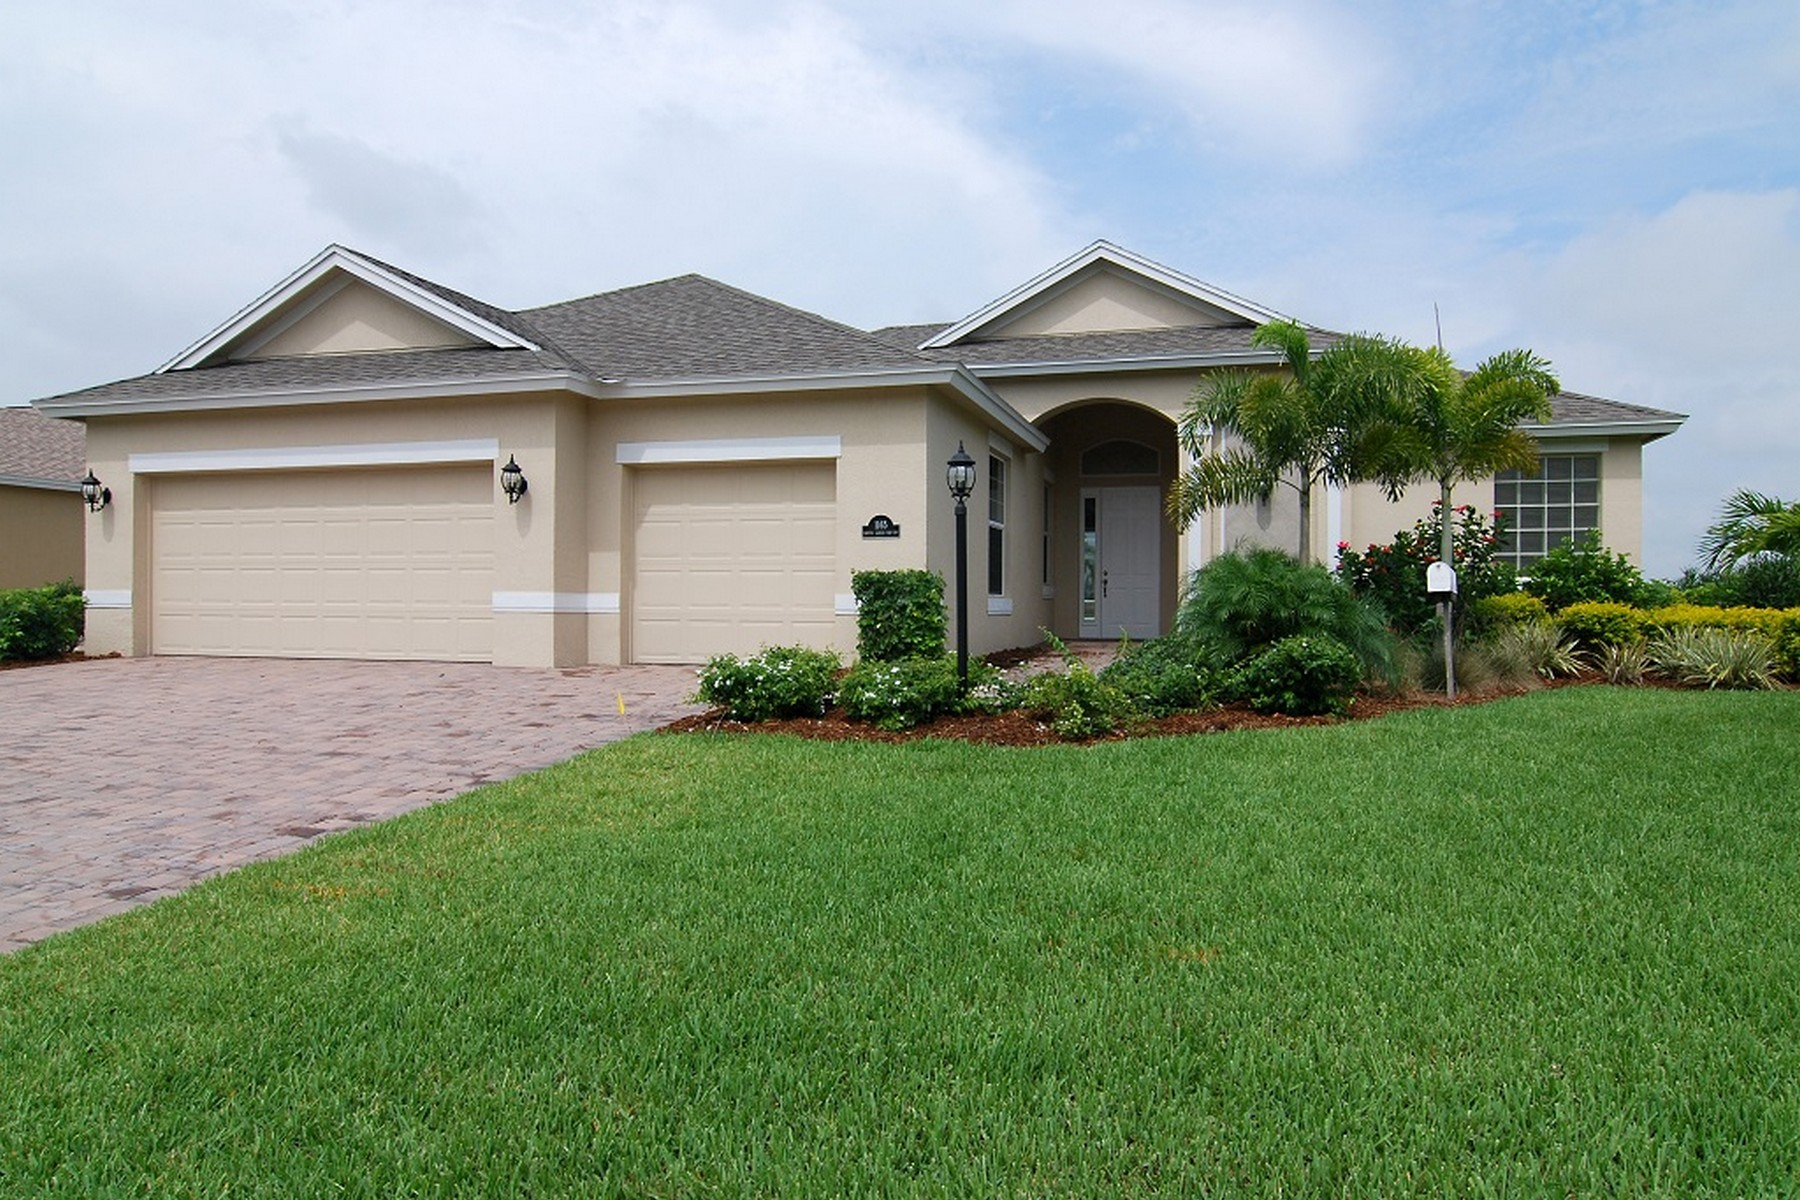 Single Family Home for Sale at The Columbia Model 4472 Gagnon Road Port St. Lucie, Florida, 34953 United States